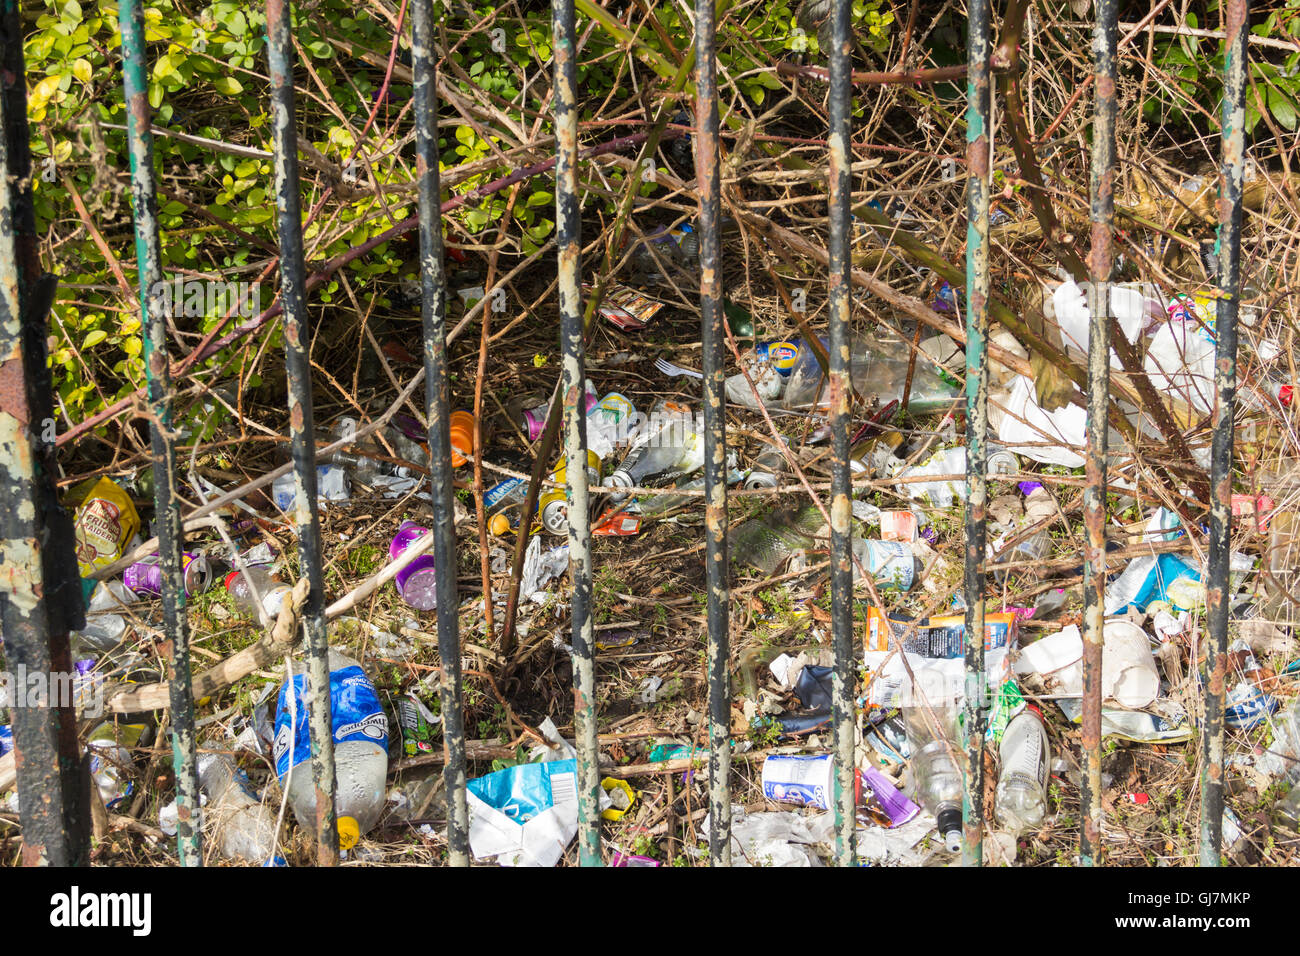 Large amounts of litter spread over an area of spare ground behind an iron fence in north west England. - Stock Image